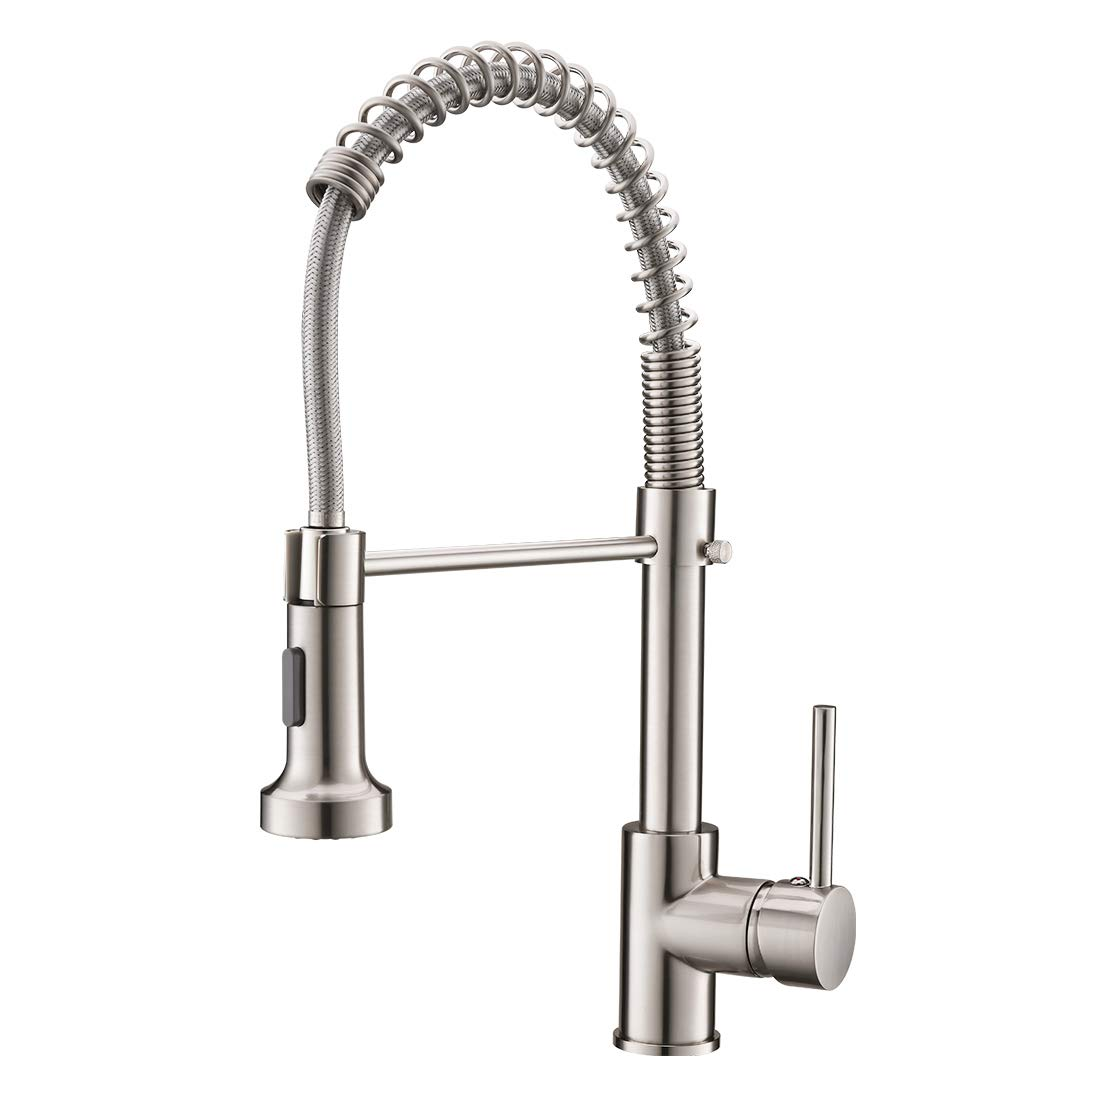 Commercial Pull Down Sprayer Kitchen Sink Faucet,Modern Stainless Steel Single Handle Spring Pull Down Kitchen Faucet with Sprayer,Brushed Nickel